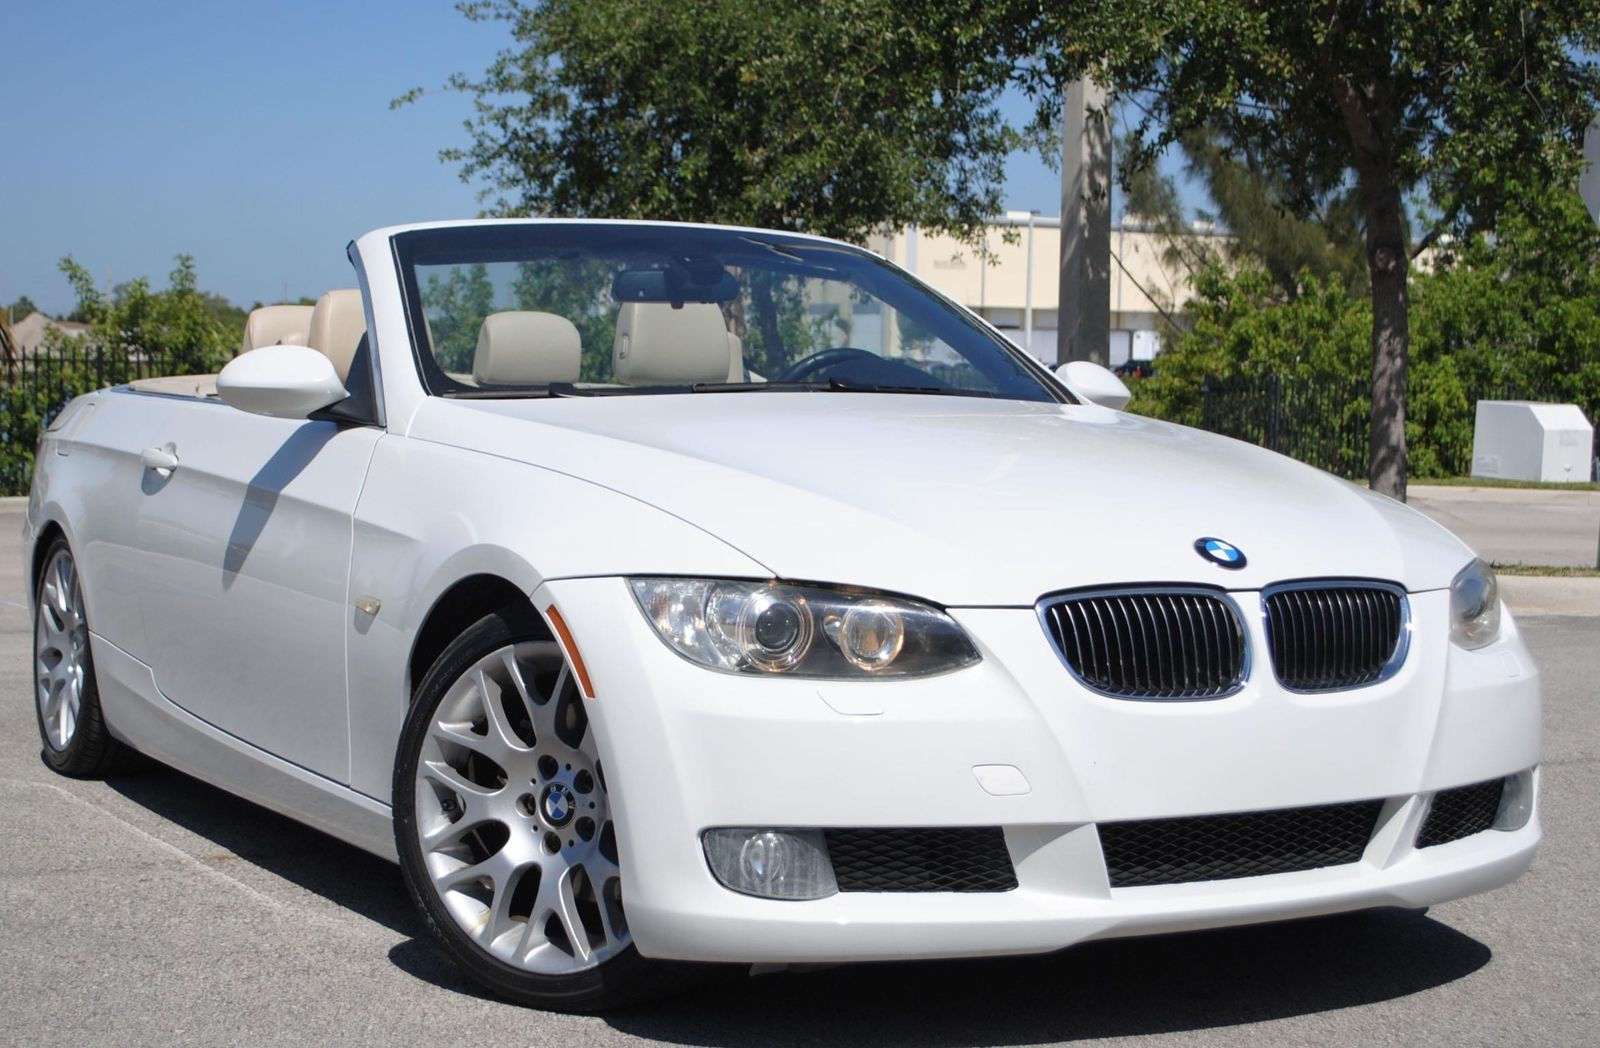 Awesome 3 Series 328i Convertible 2009 Bmw 0l 6cyl Aut Trans Just 59k Mls No Reserve 2017 2018